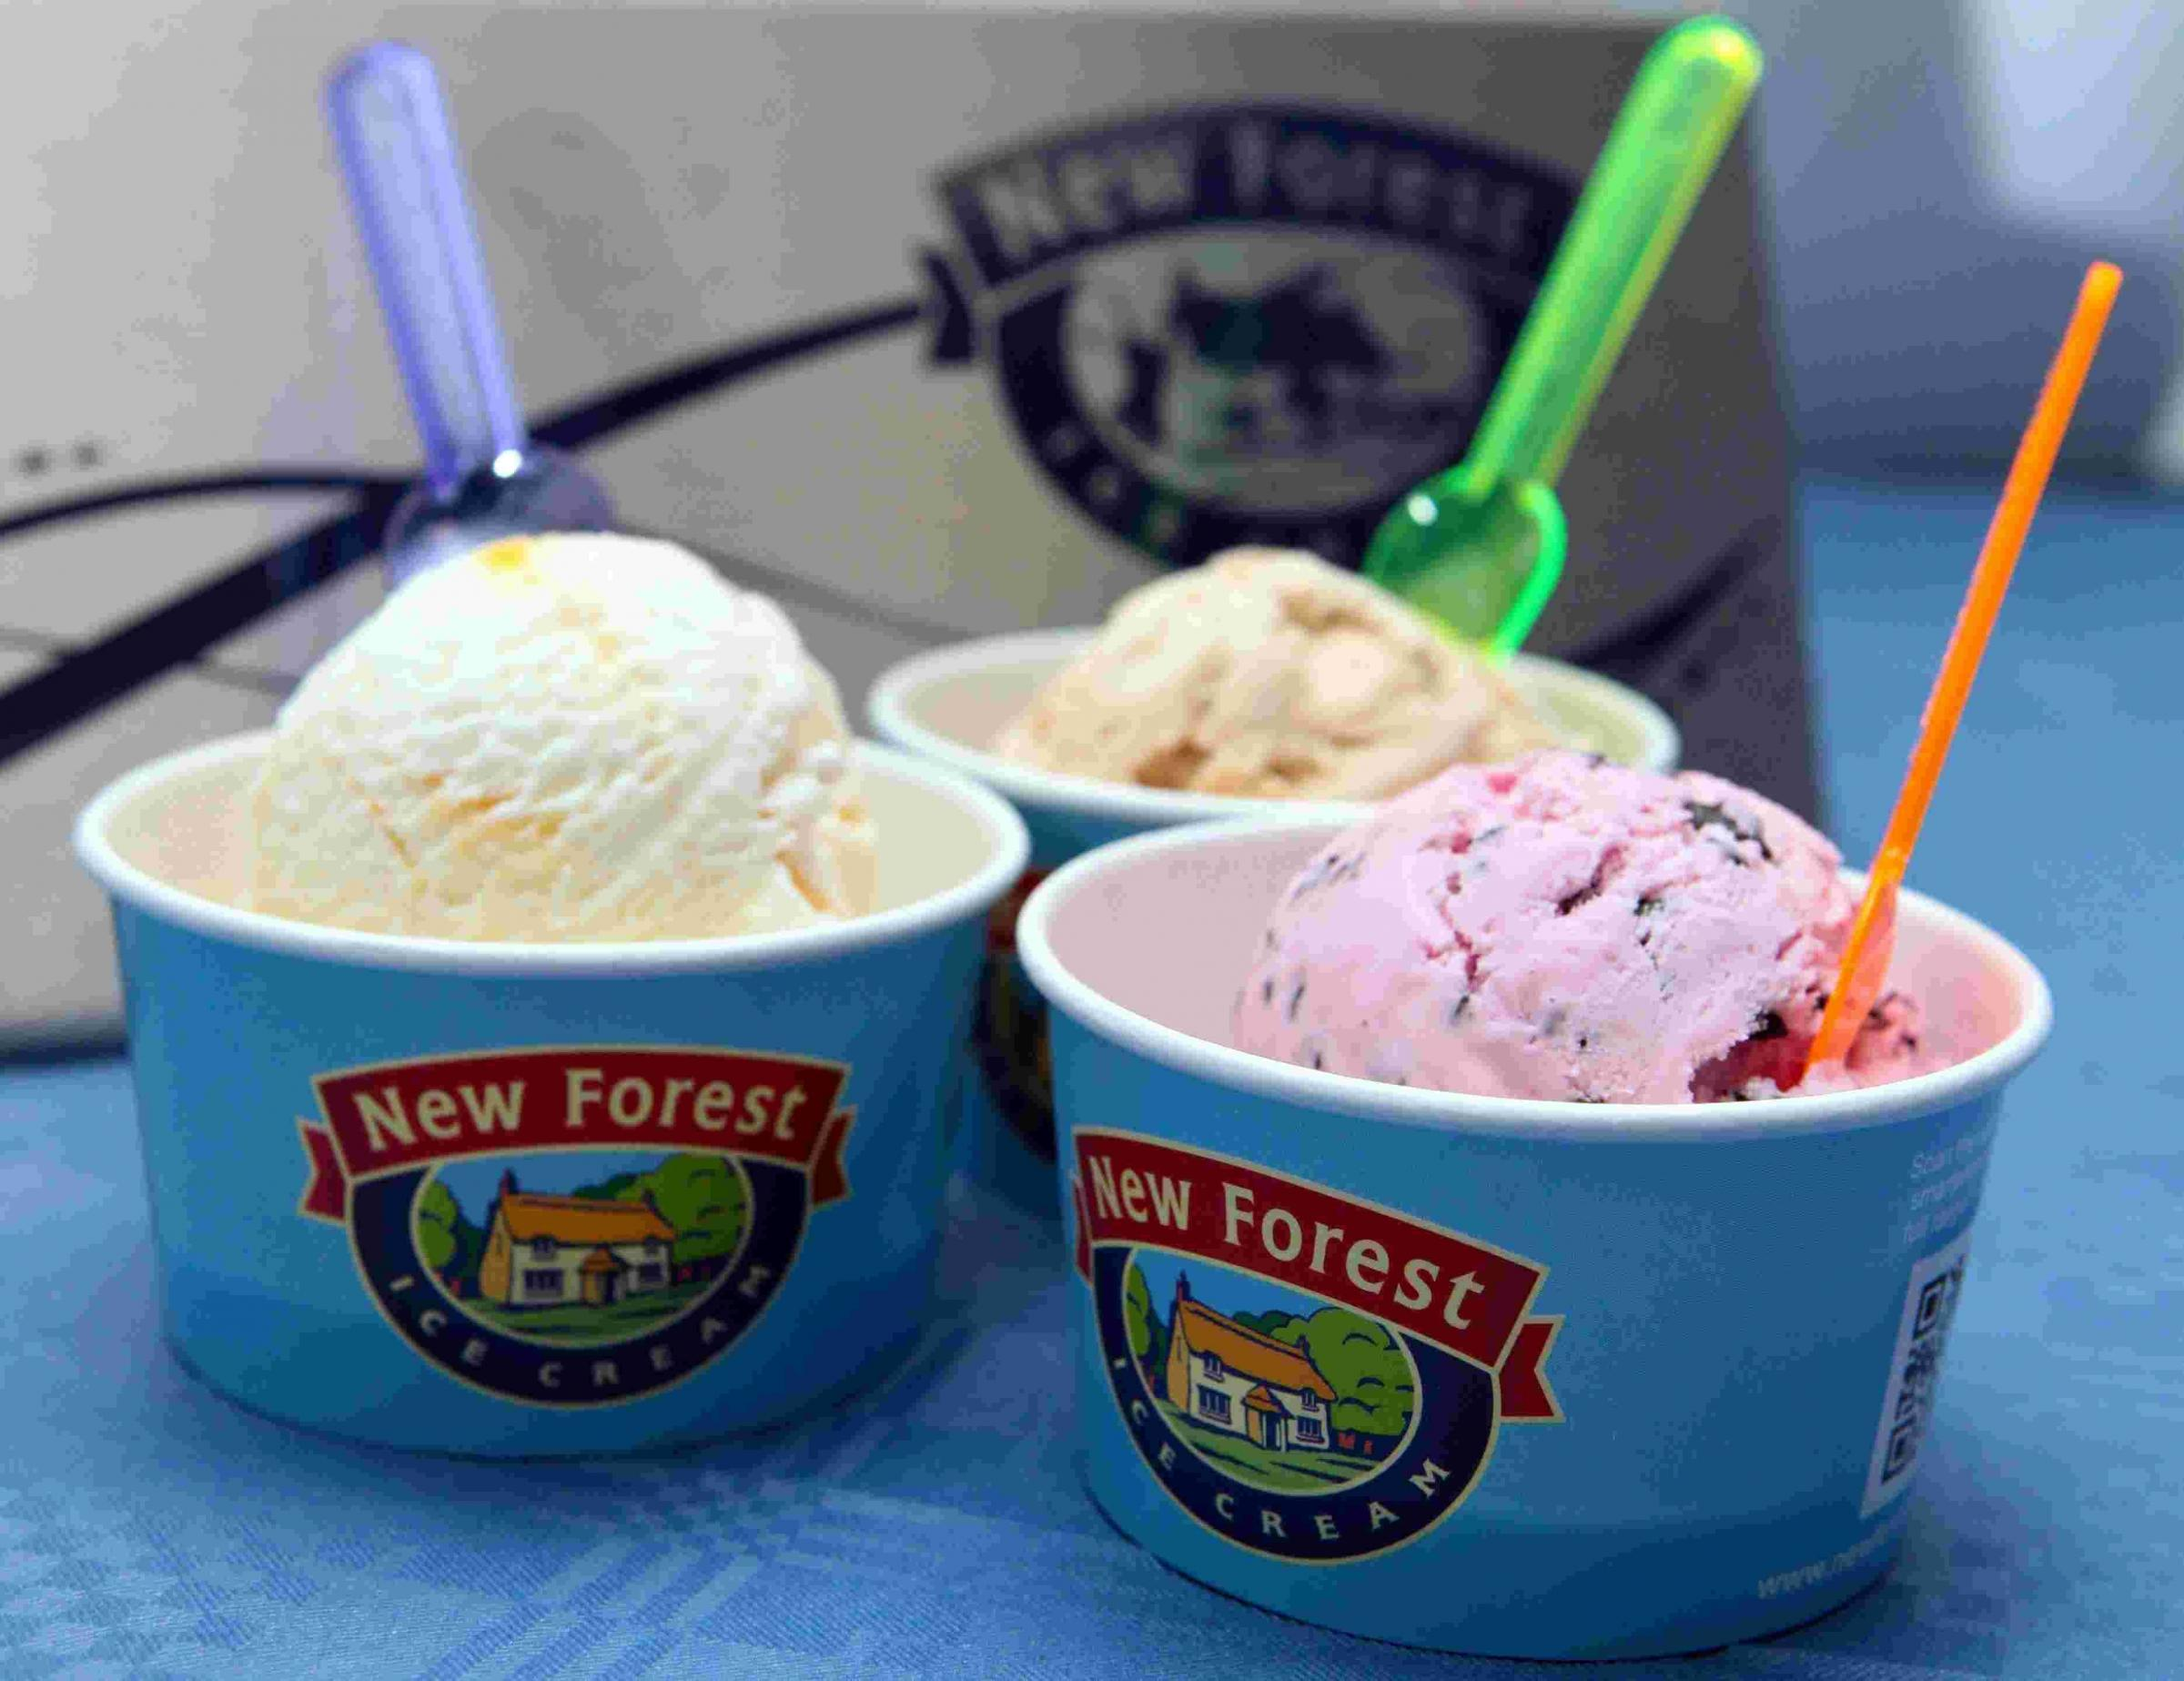 New Forest ice cream steps into the limelight